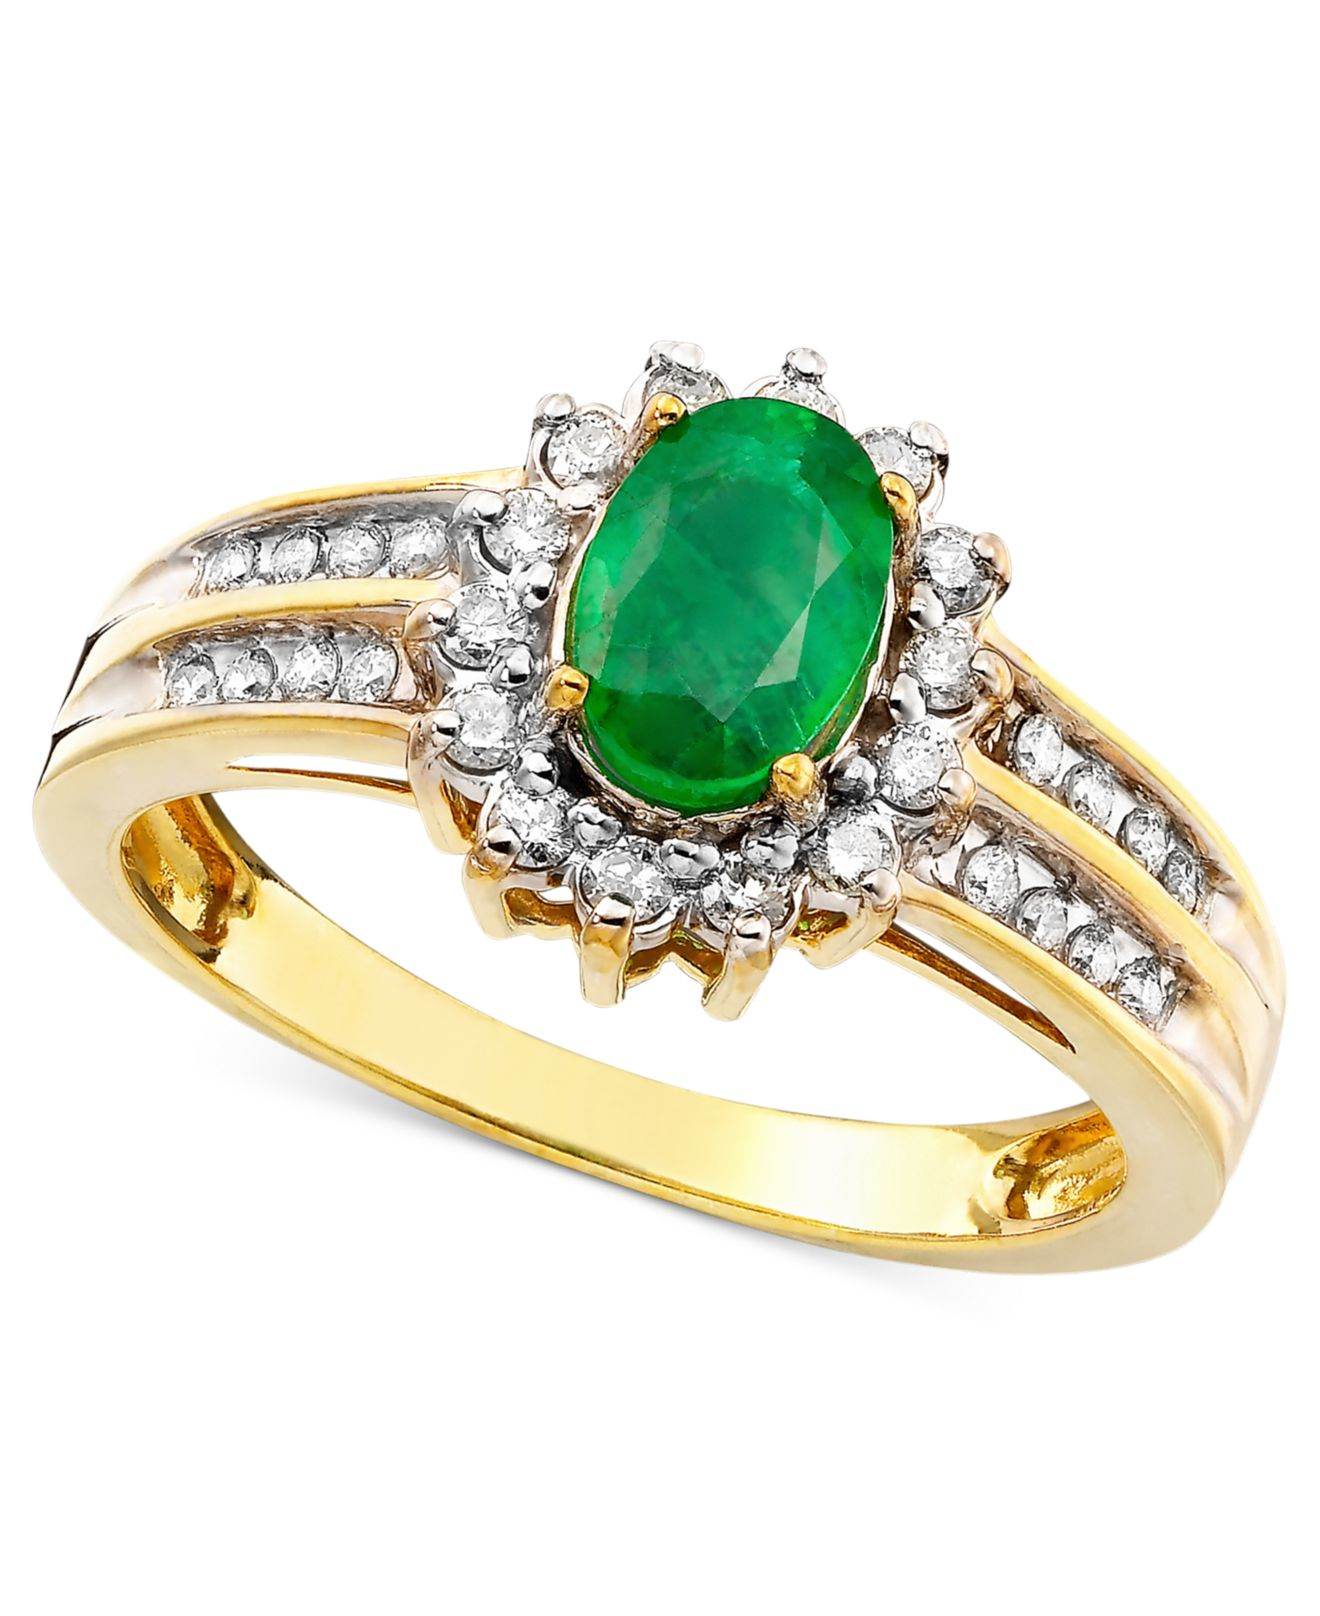 Macy s Emerald 3 4 Ct T w And Diamond 3 8 Ct T w Ring In 14k Gold